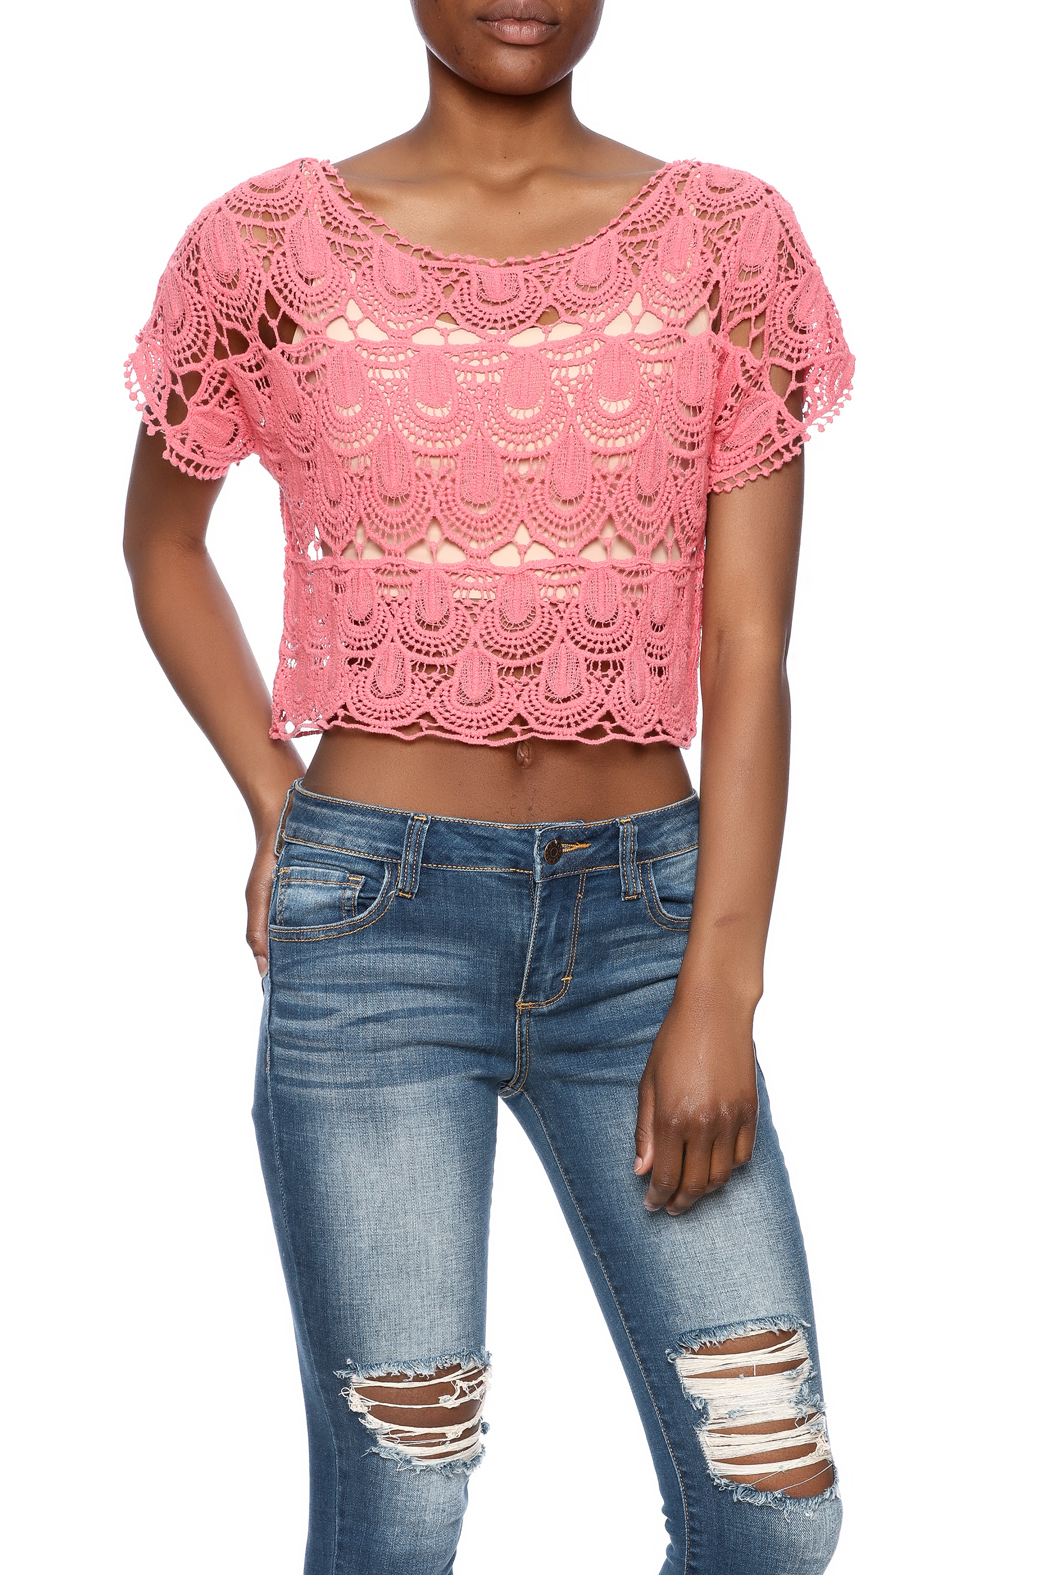 C Mode Coral Crocheted Crop Top - Main Image